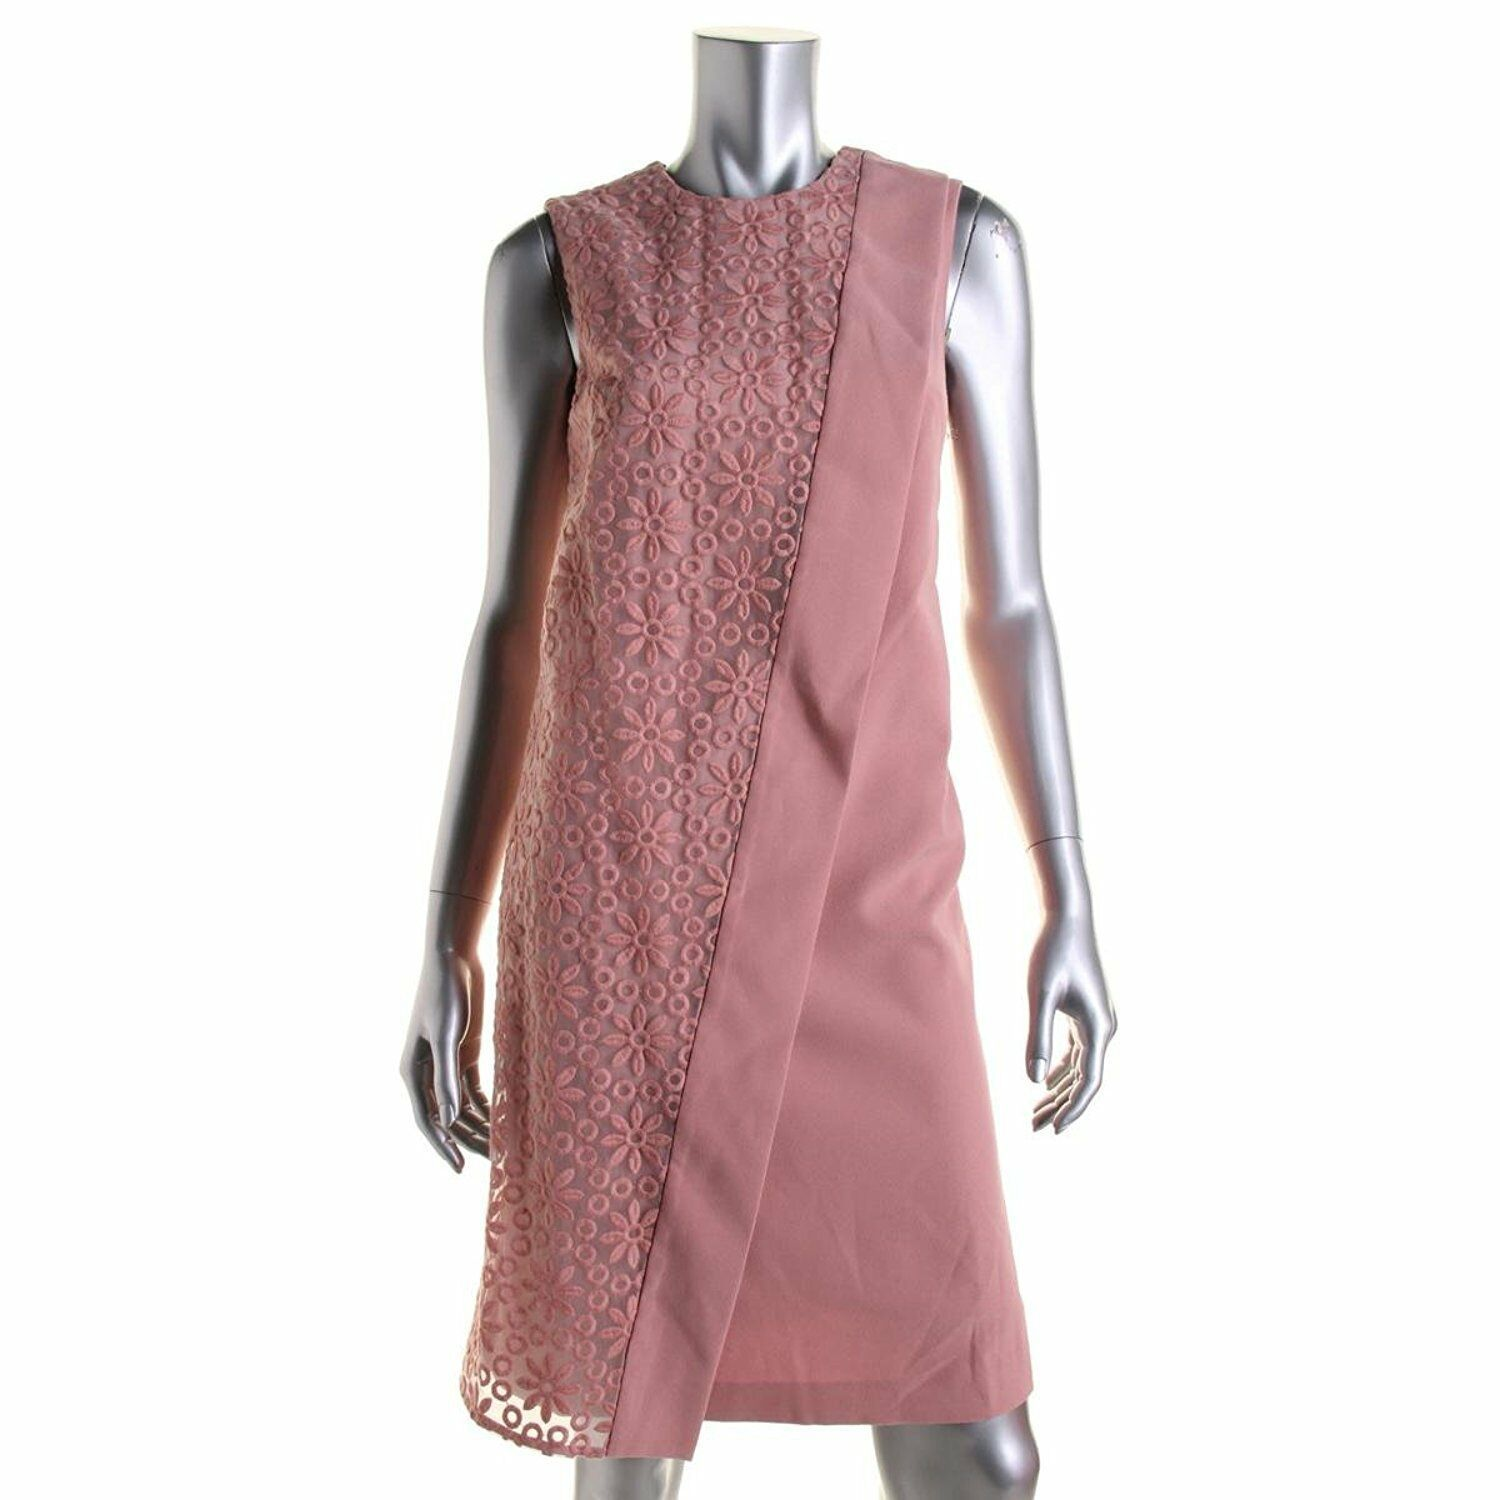 Primary image for Anne Klein Women's Sz 12 Combo Sleeveless Overlap Dress Petal 2146-3